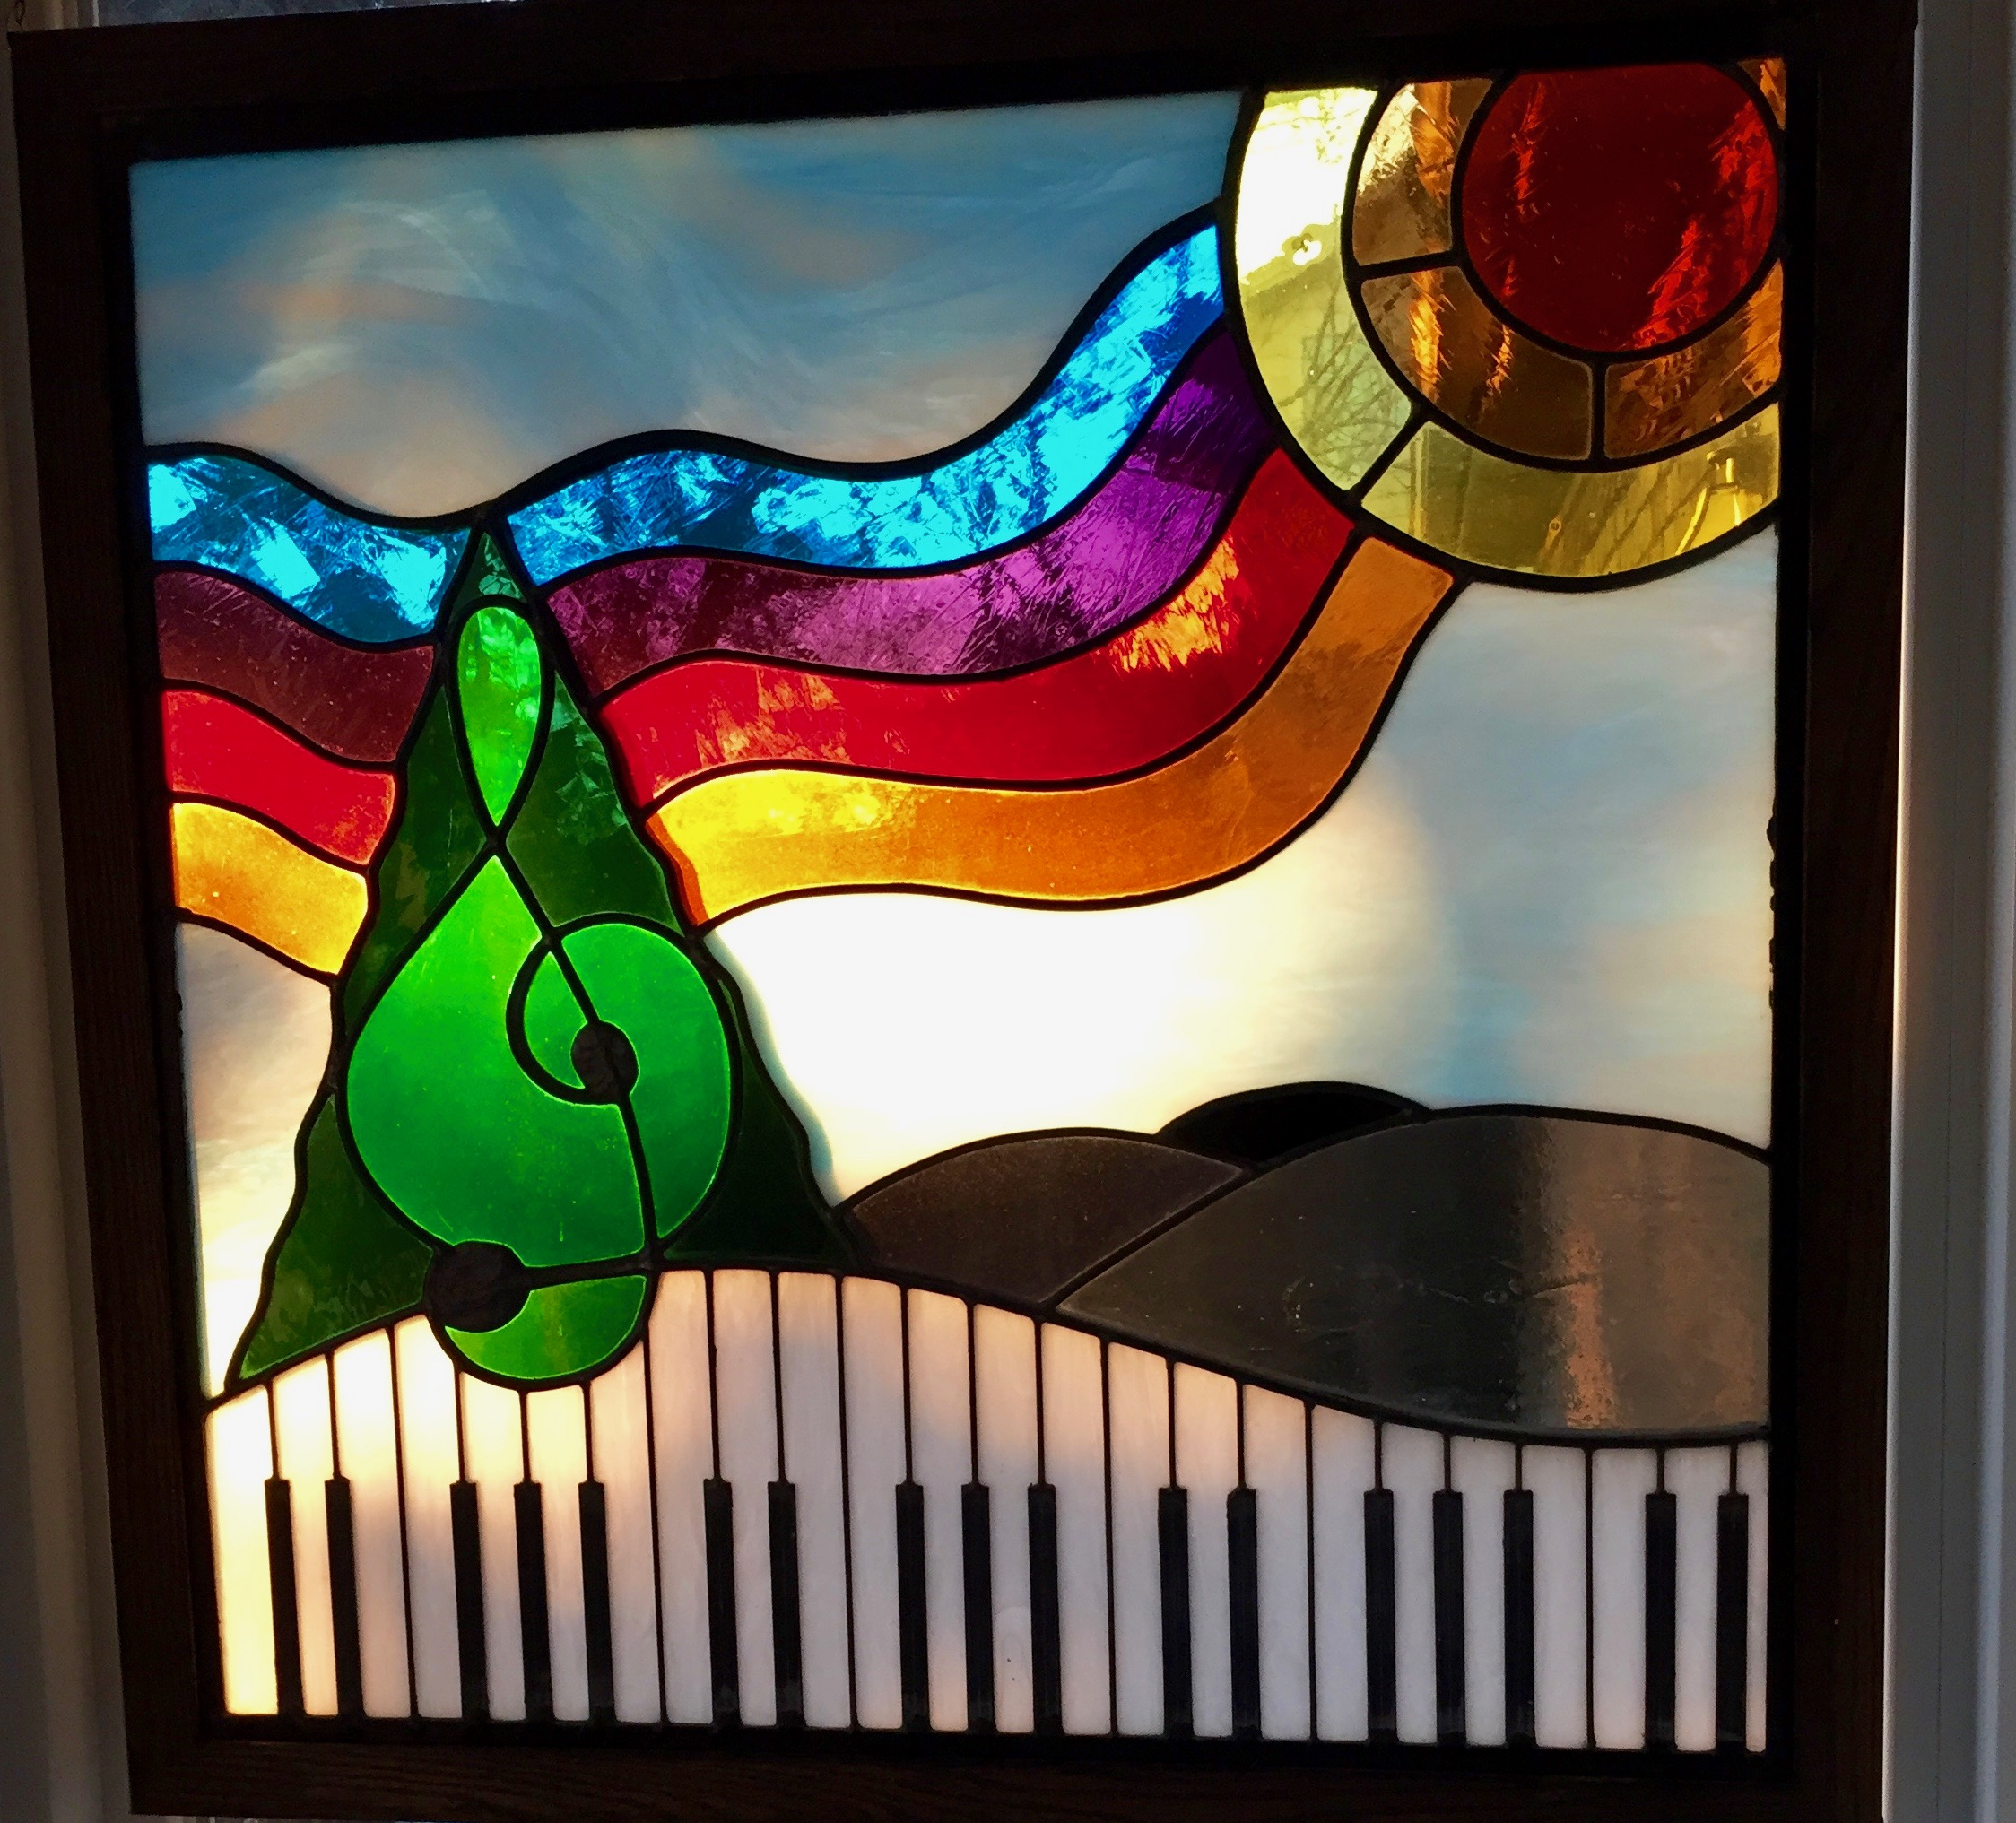 Stained Glass Panel in my Studio…by noted artist and friend Susan Stinsmuehlen-Amend